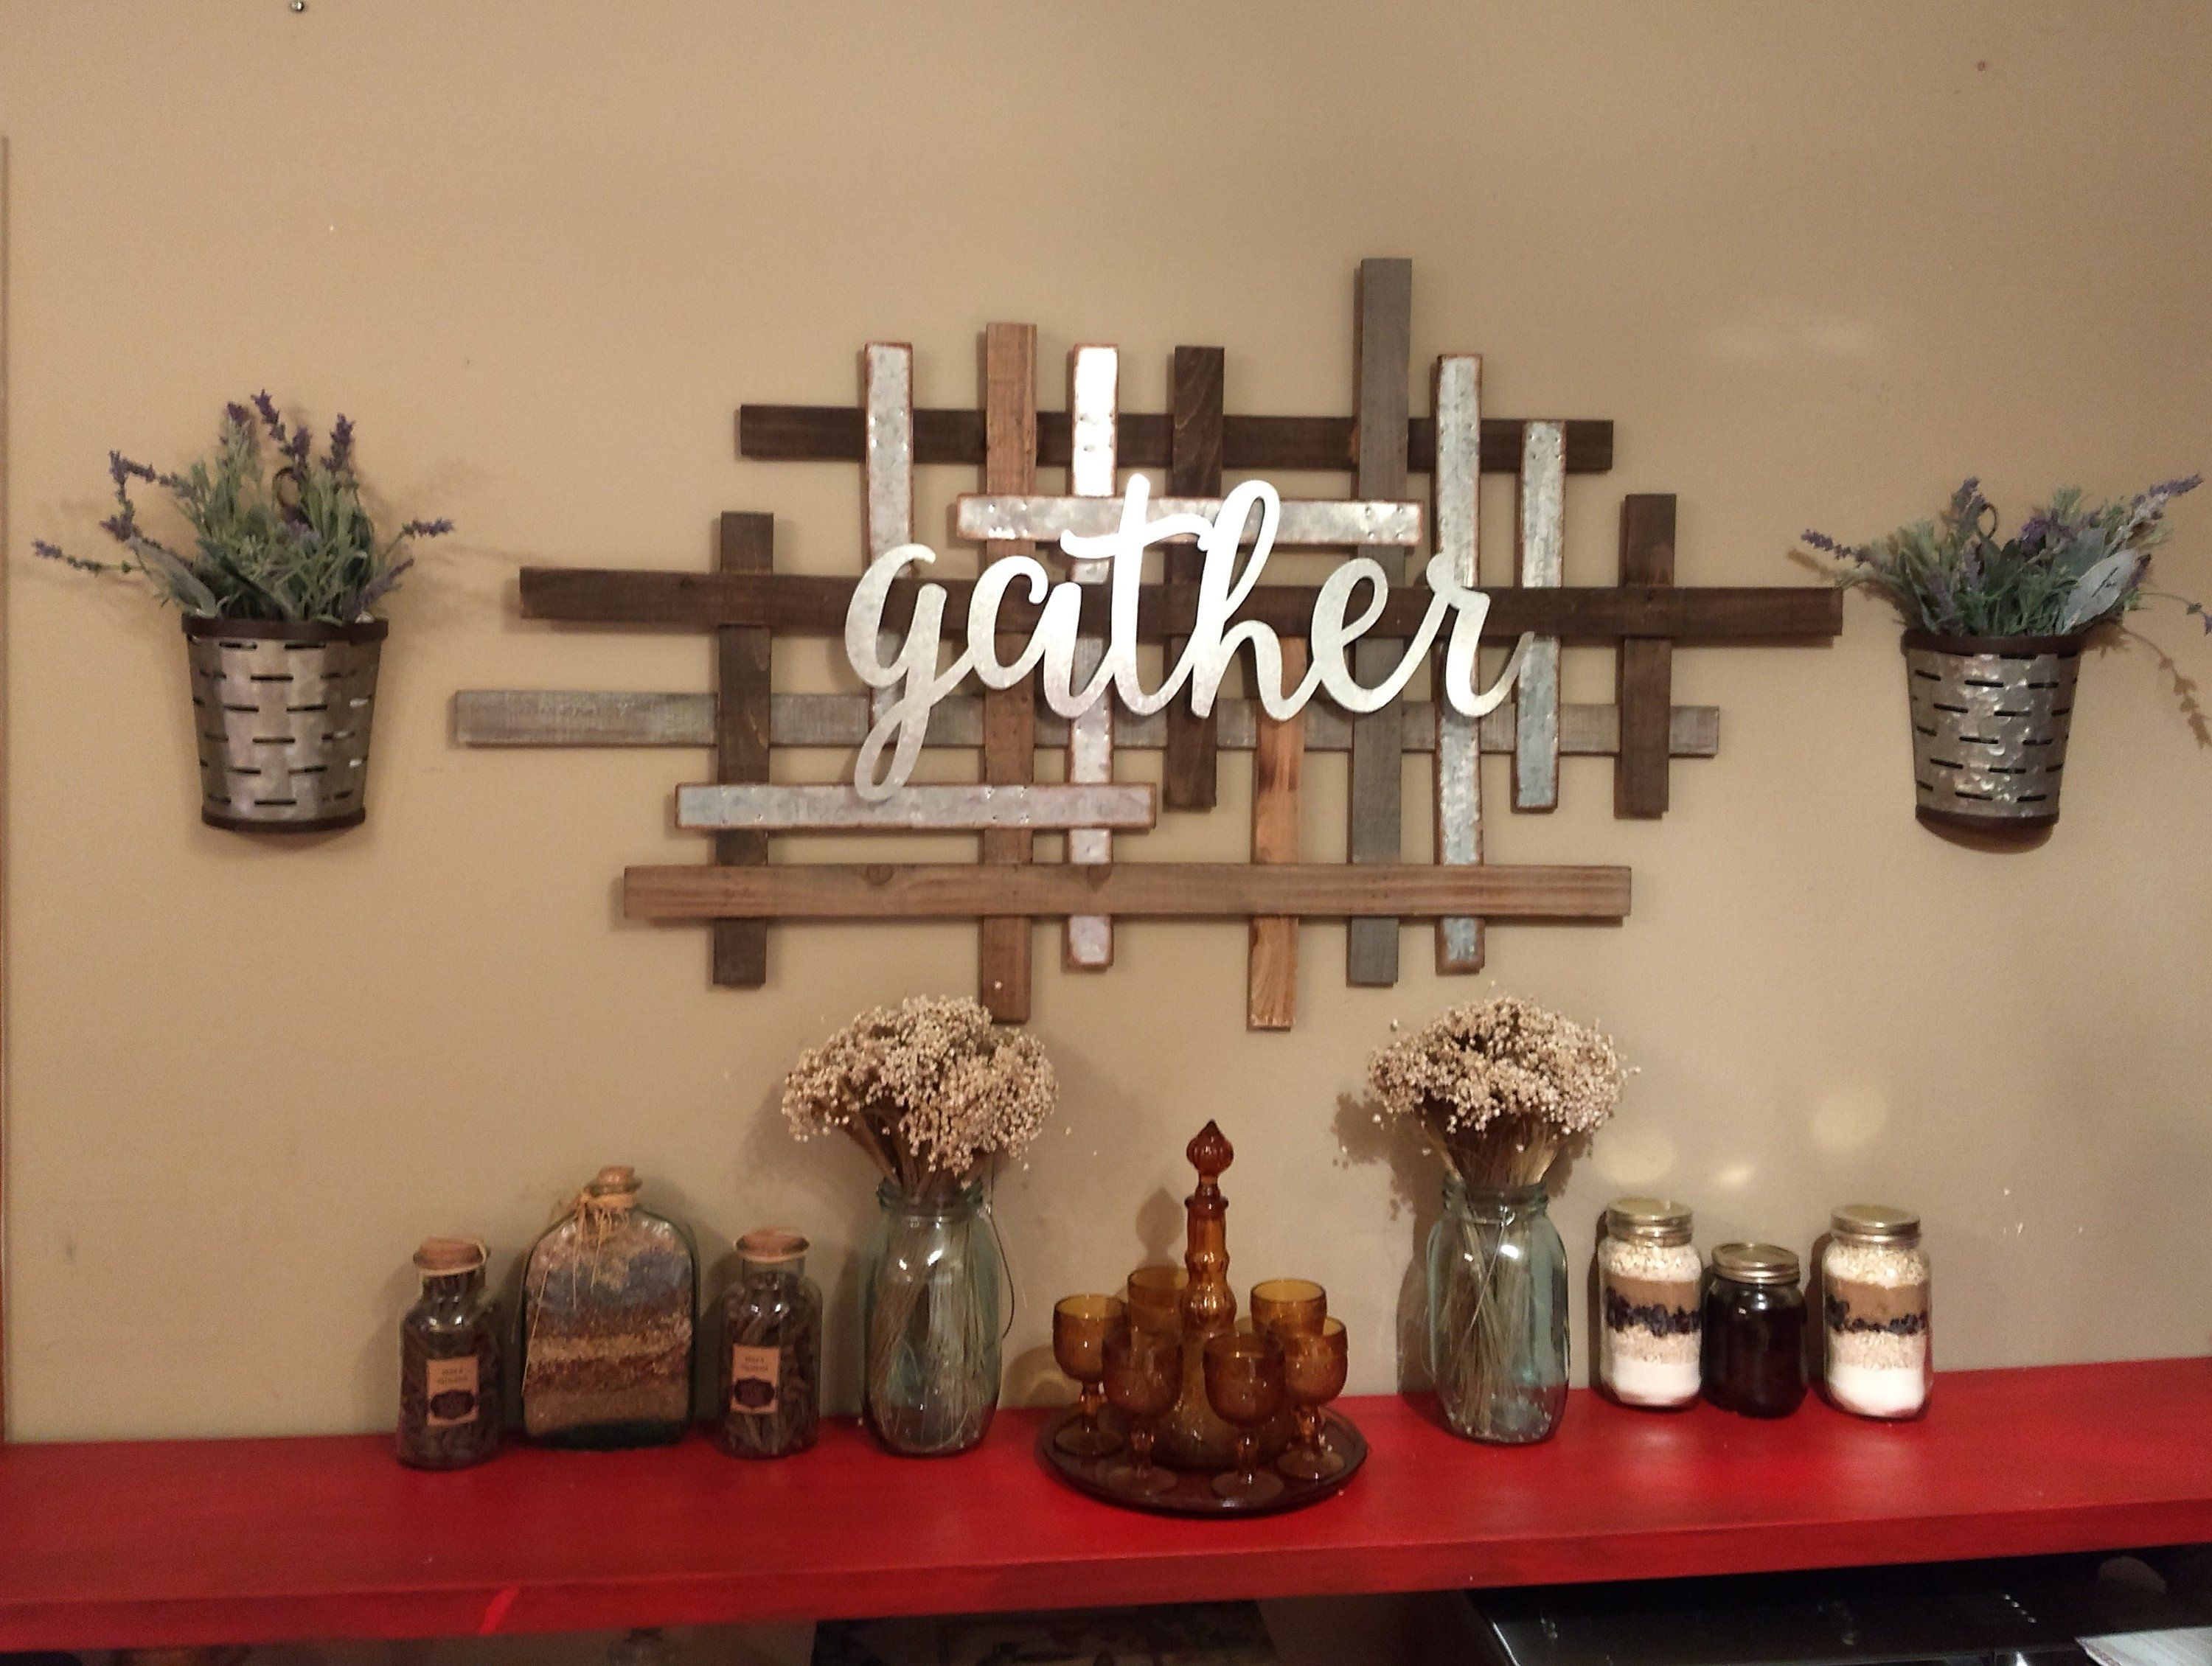 Farmhouse Decor Gather Together Country Wall Sculpture Rustic